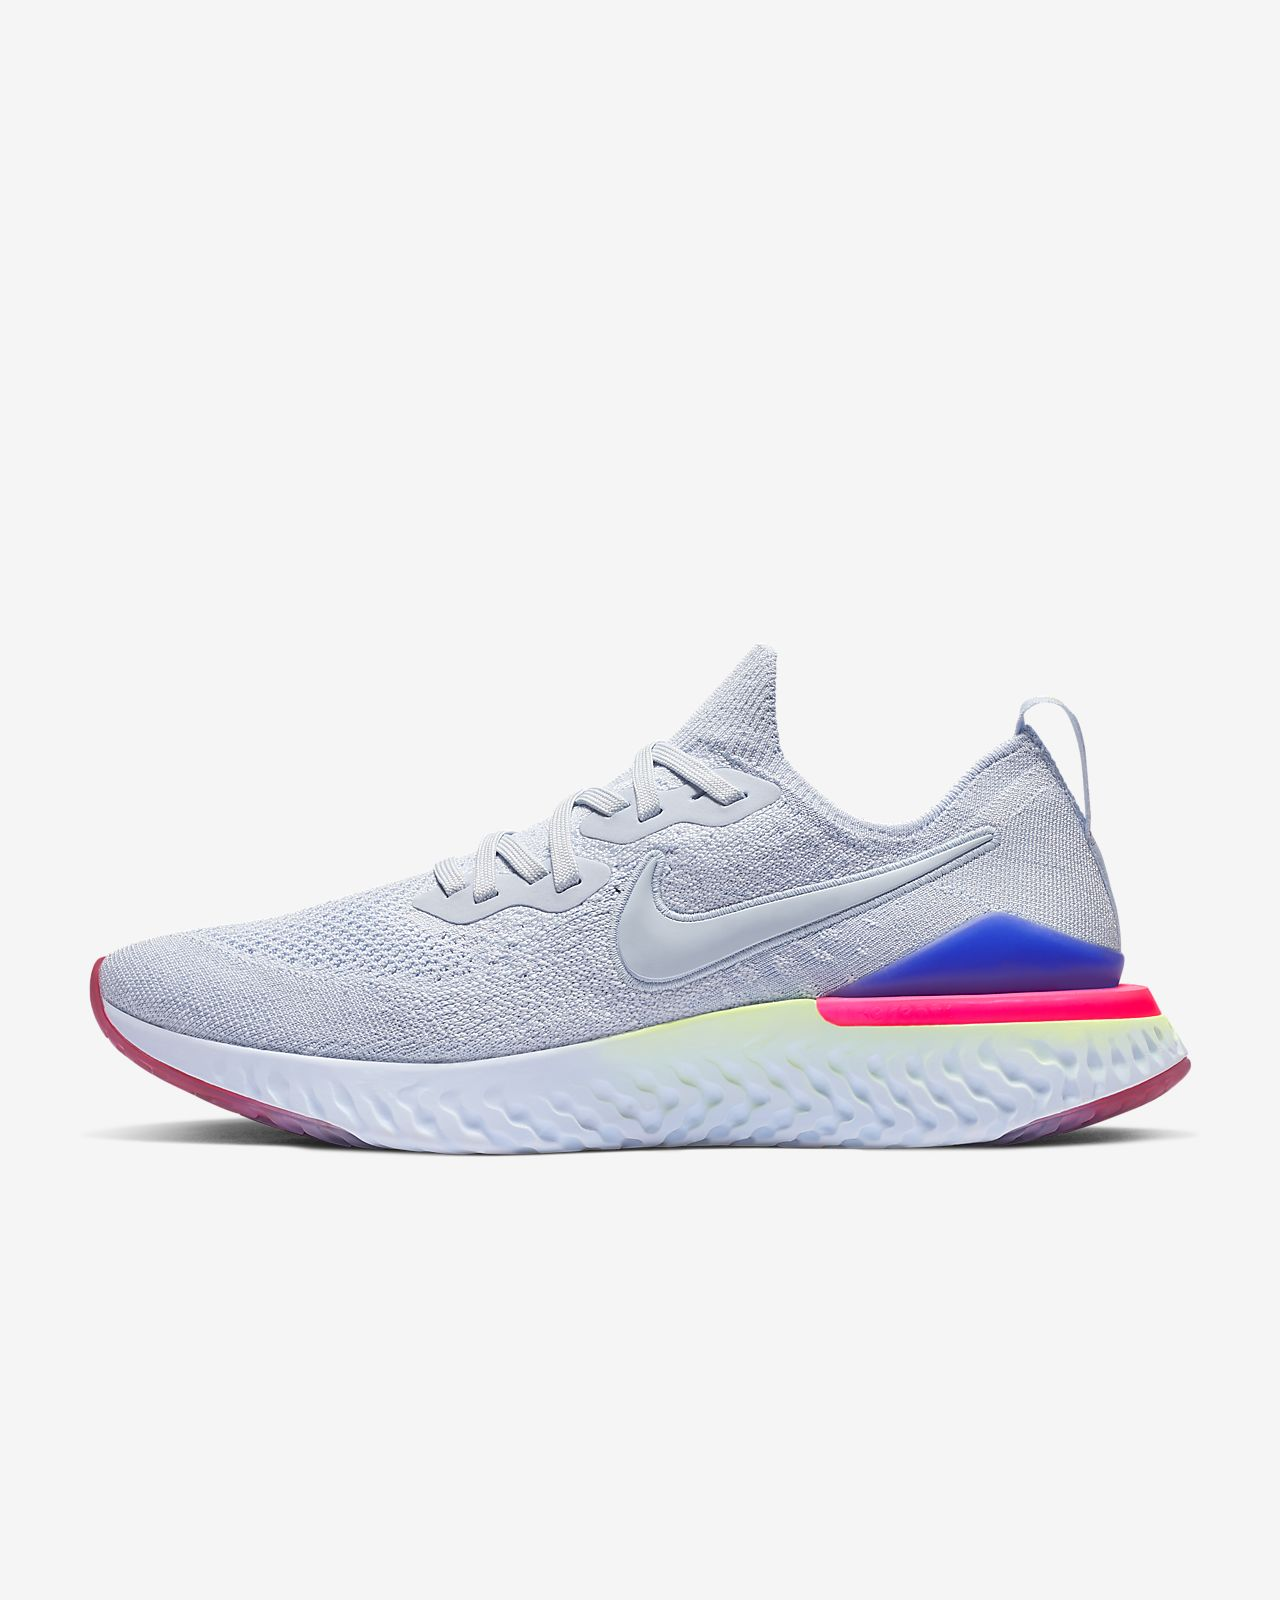 a0cb7e65d08 Nike Epic React Flyknit 2 Men s Running Shoe. Nike.com GB